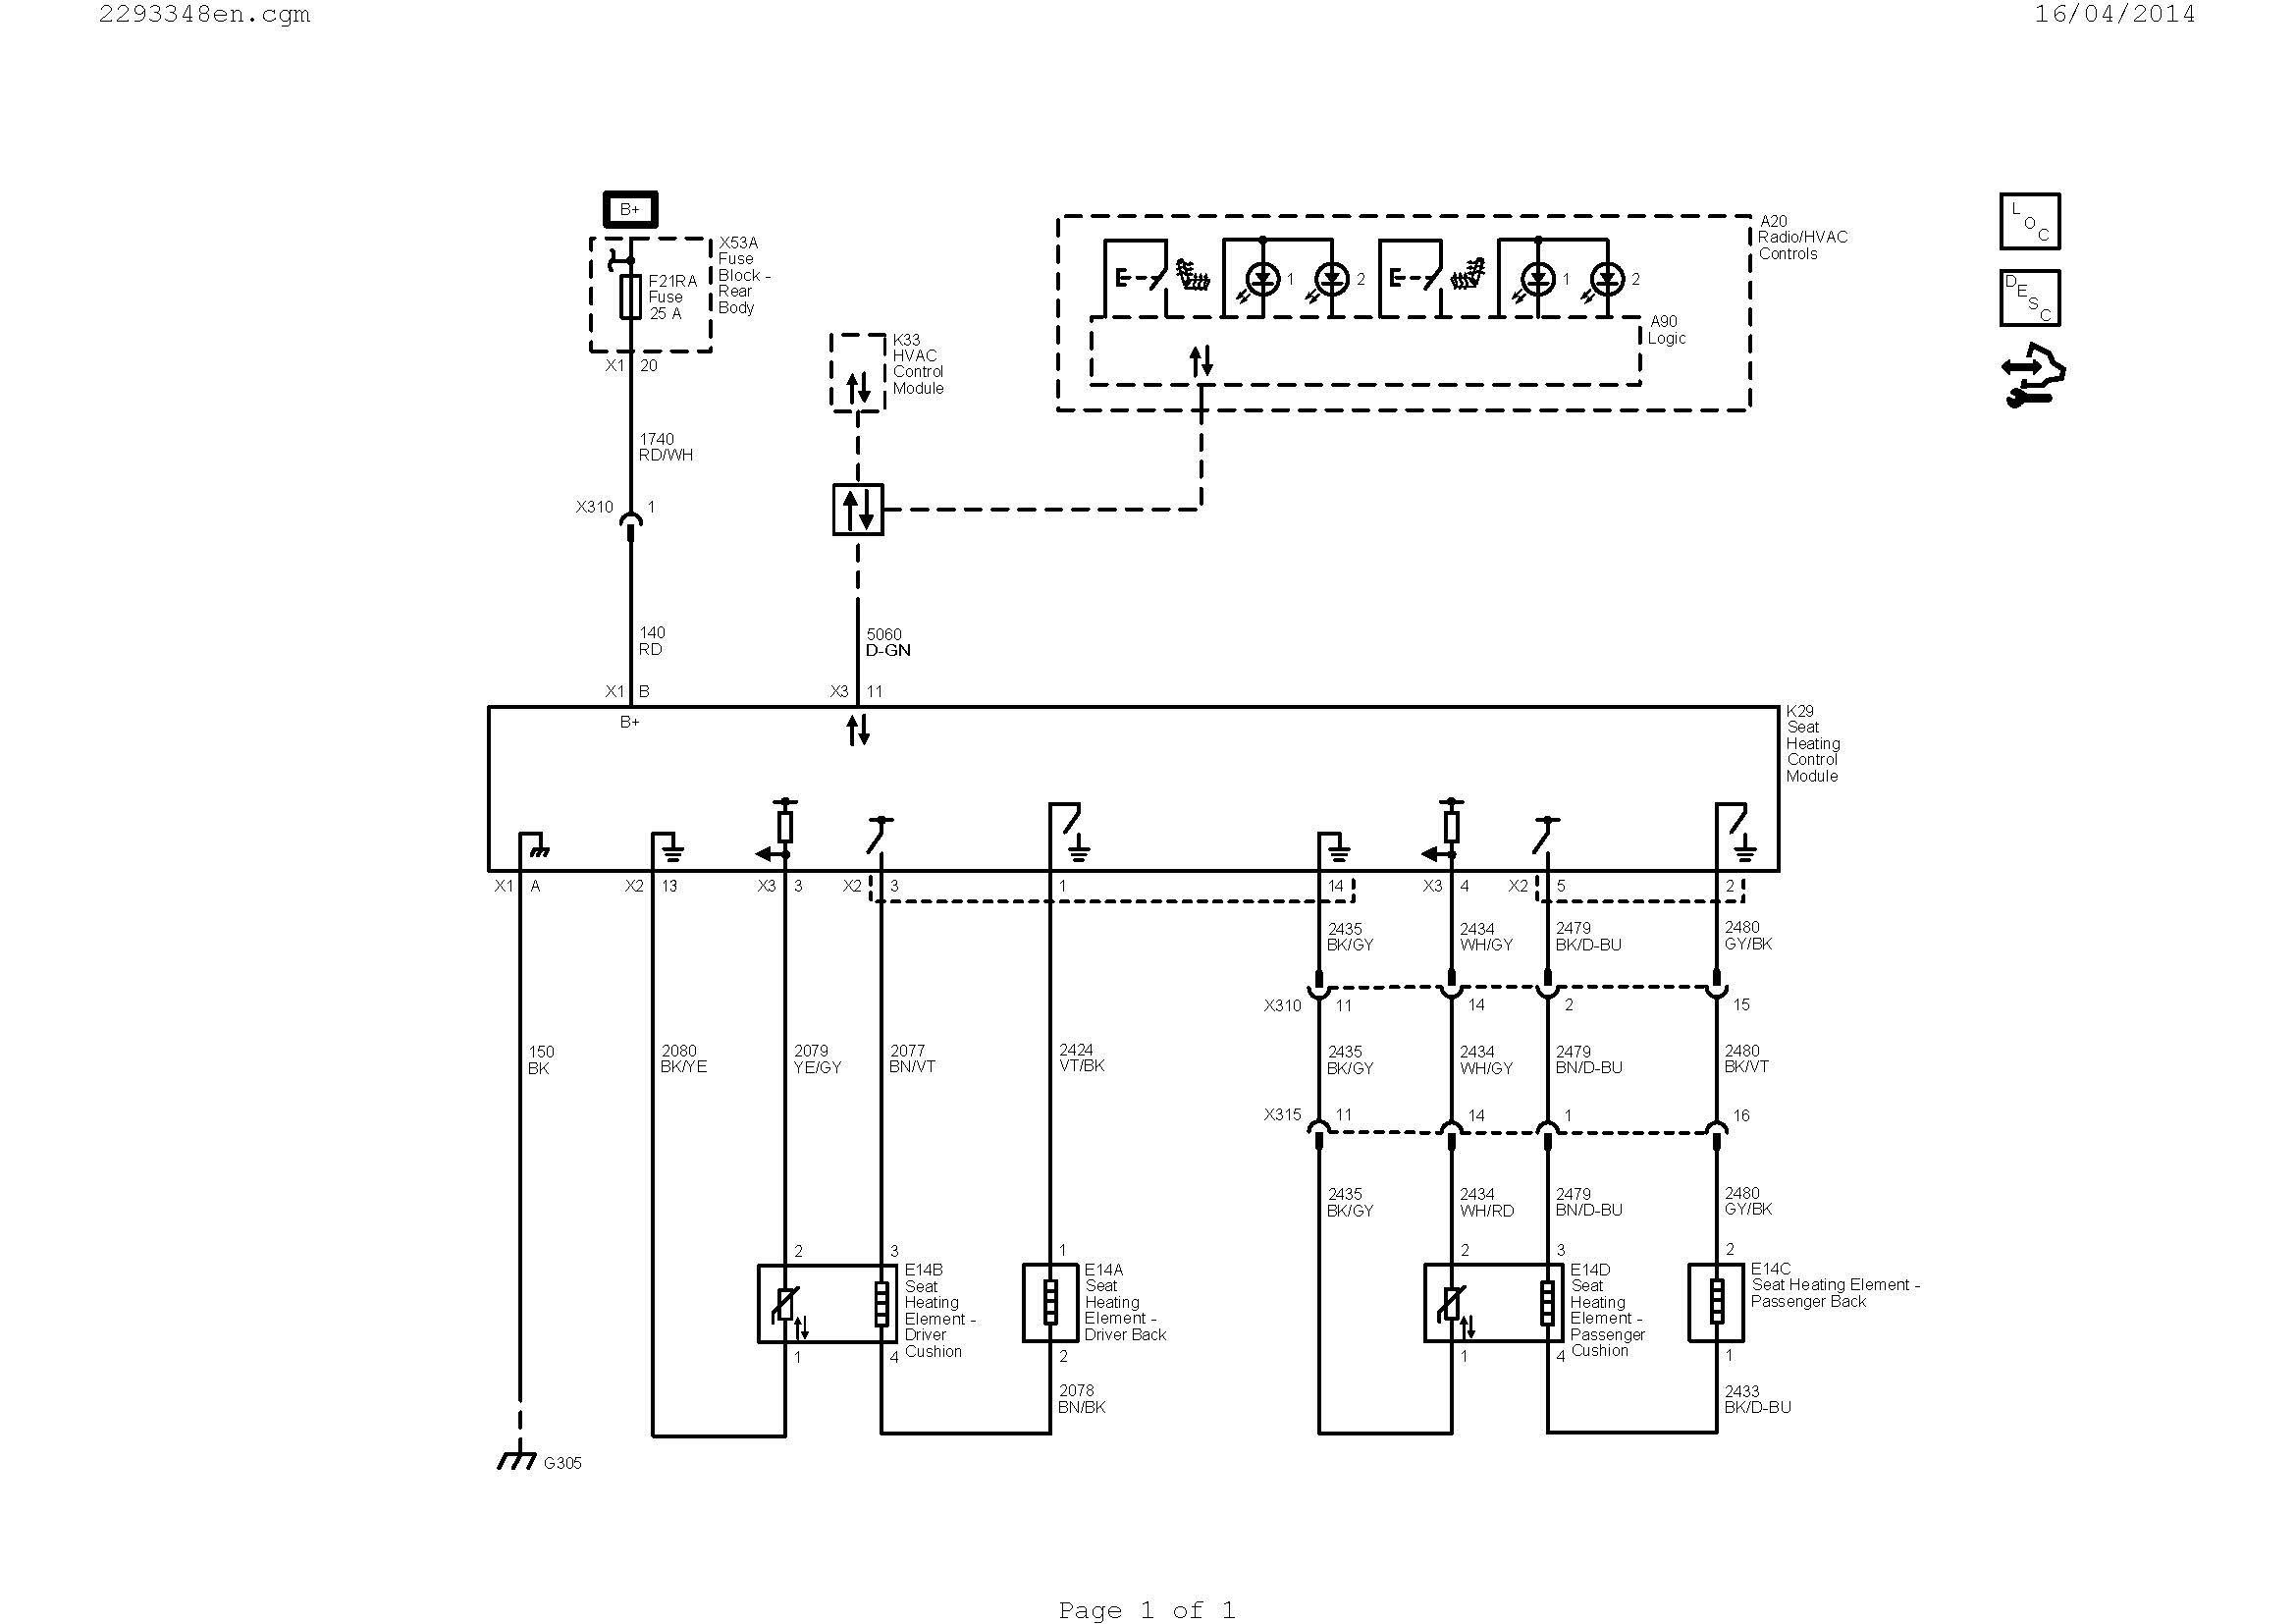 Car Electrical Wiring Diagrams Wiring Diagram for Drag Car New Relay Wiring Diagram Best Wire Of Car Electrical Wiring Diagrams